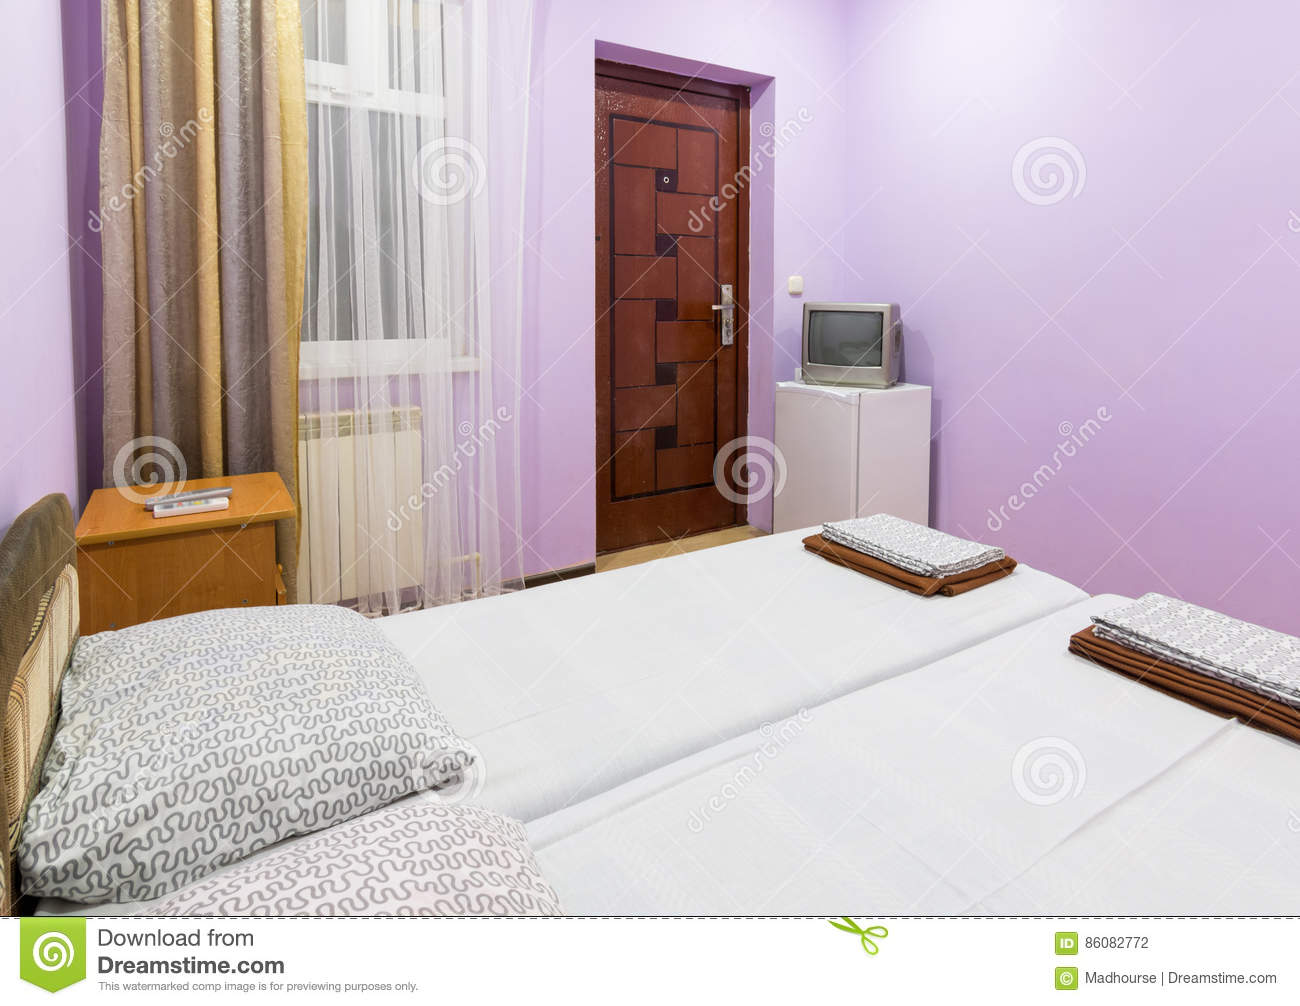 Interior Of A Small Room With A Double Bed, A Window, A TV And A ...